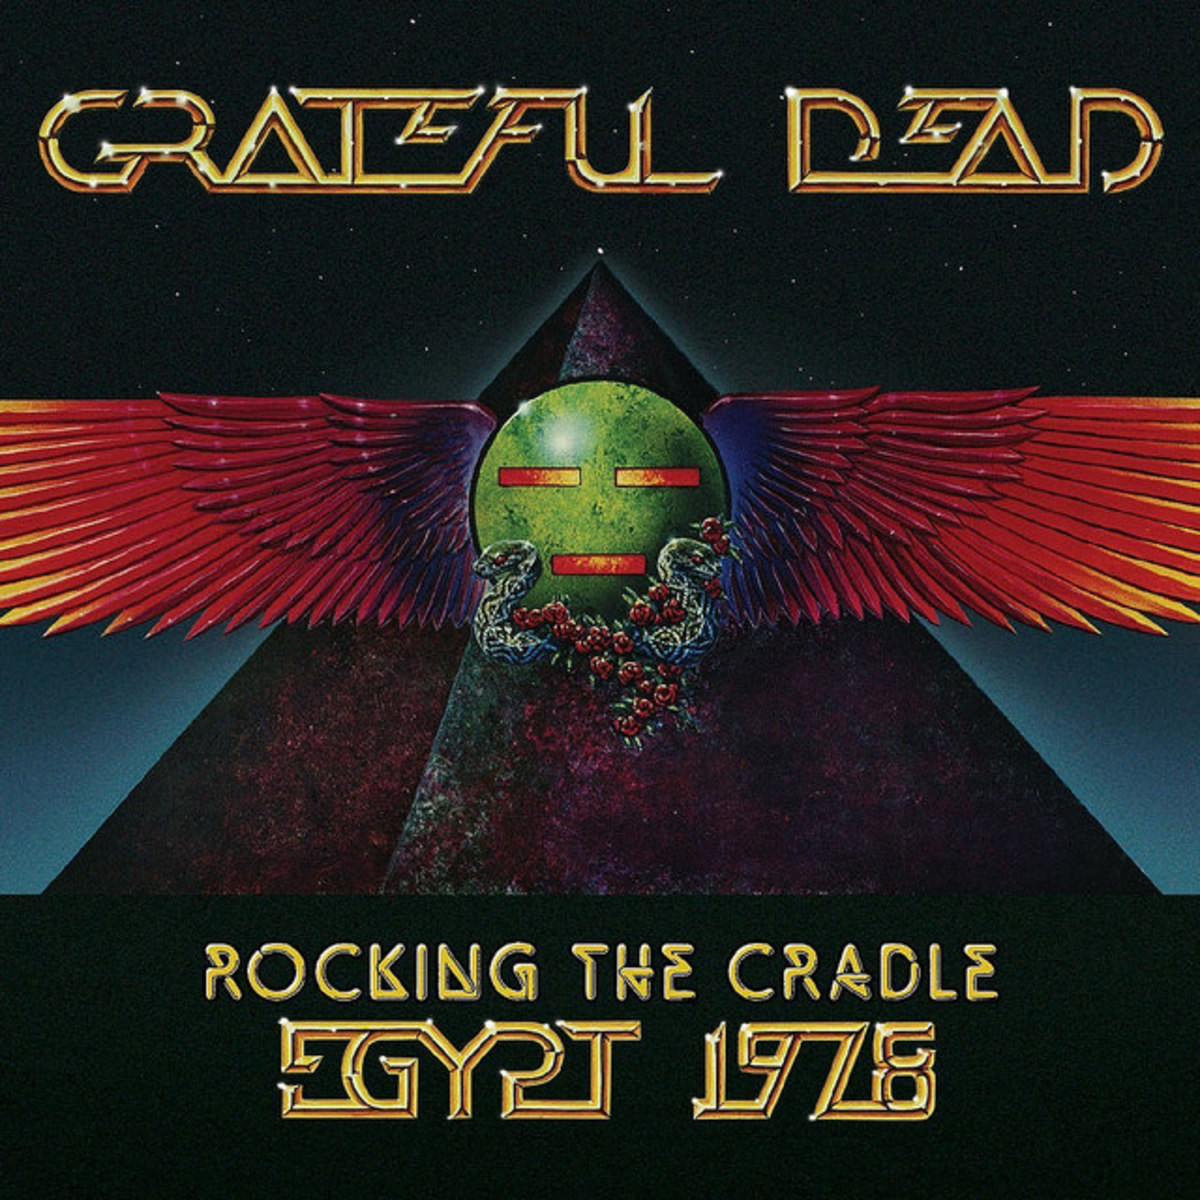 "Grateful Dead ""Rocking the Cradle Egypt 1978"" Rhino Records R2 512959 3 HDCDs 1 DVD US Pressing (2008) Album Cover Art by Alton Kelley"